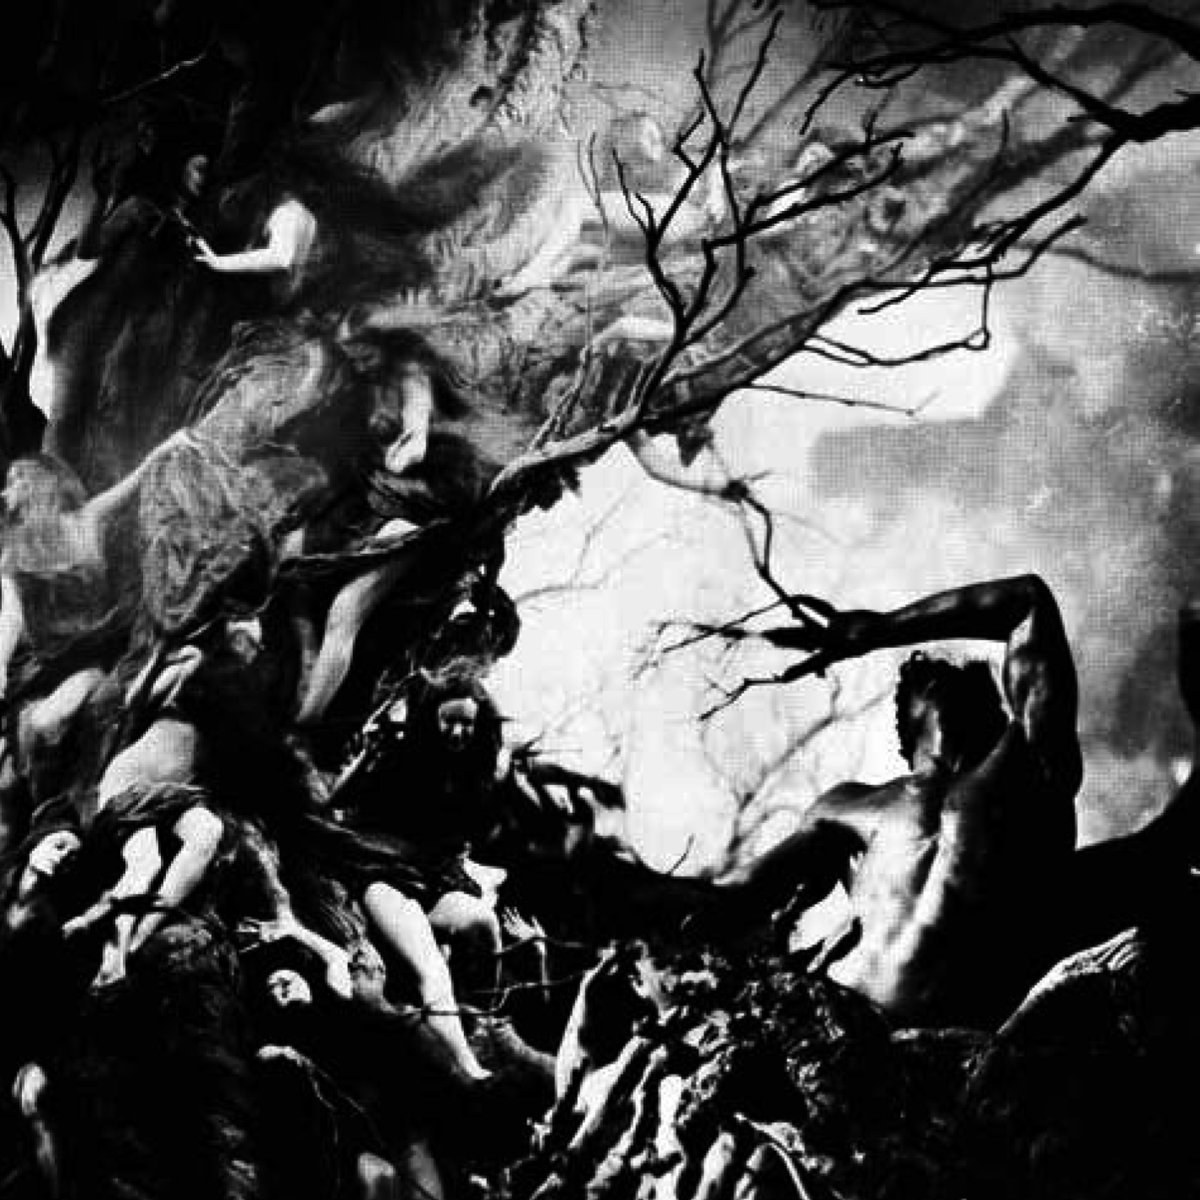 Review for Abigor - Höllenzwang (Chronicles of Perdition)